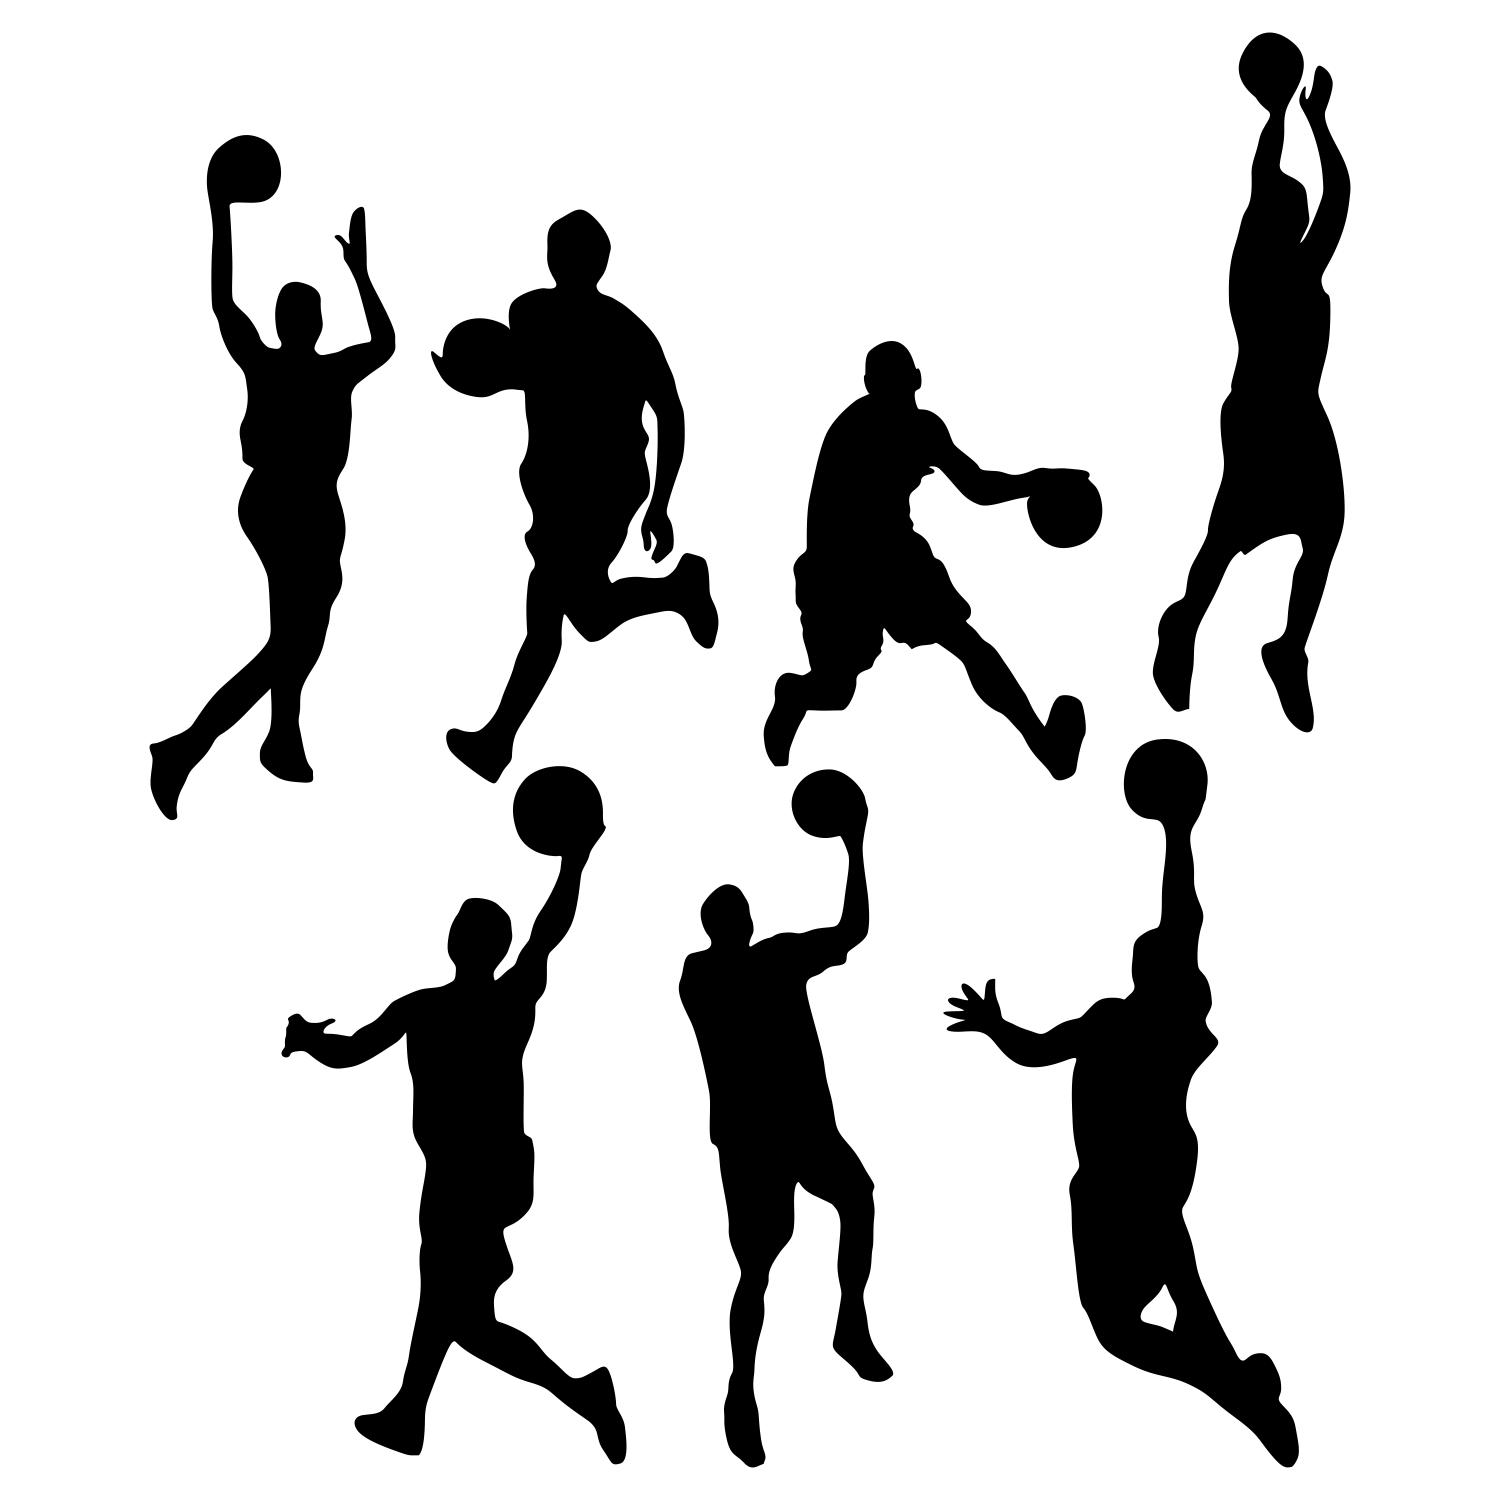 Free Basketball Illustrations Download Free Clip Art Free Clip Art On Clipart Library